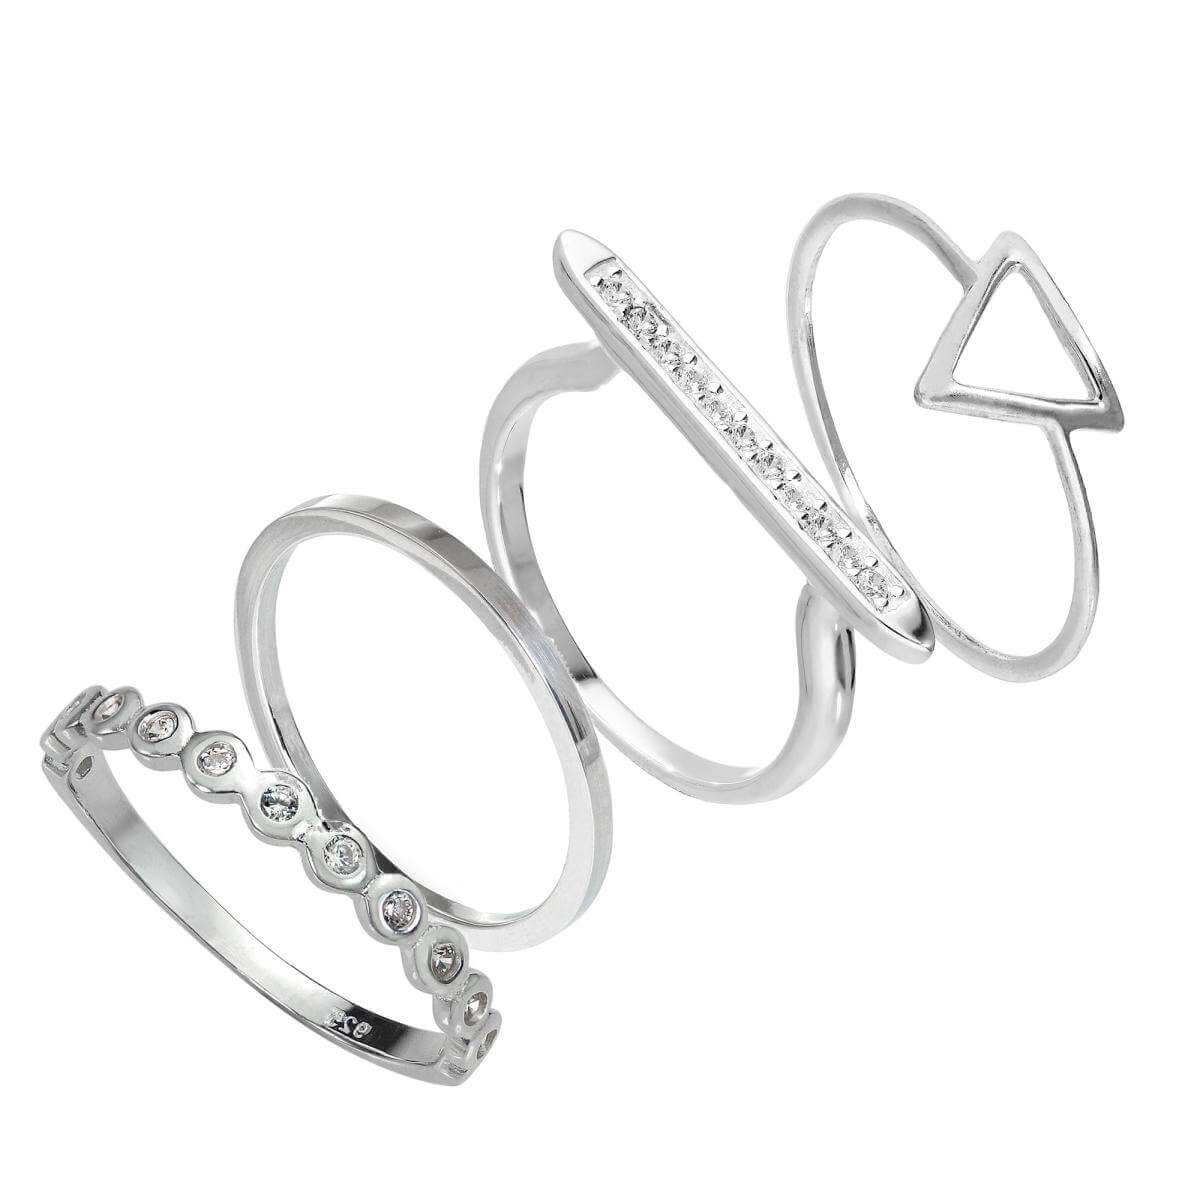 Sterling Silver Triangle & Bar Geometric CZ Stacking Rings Set